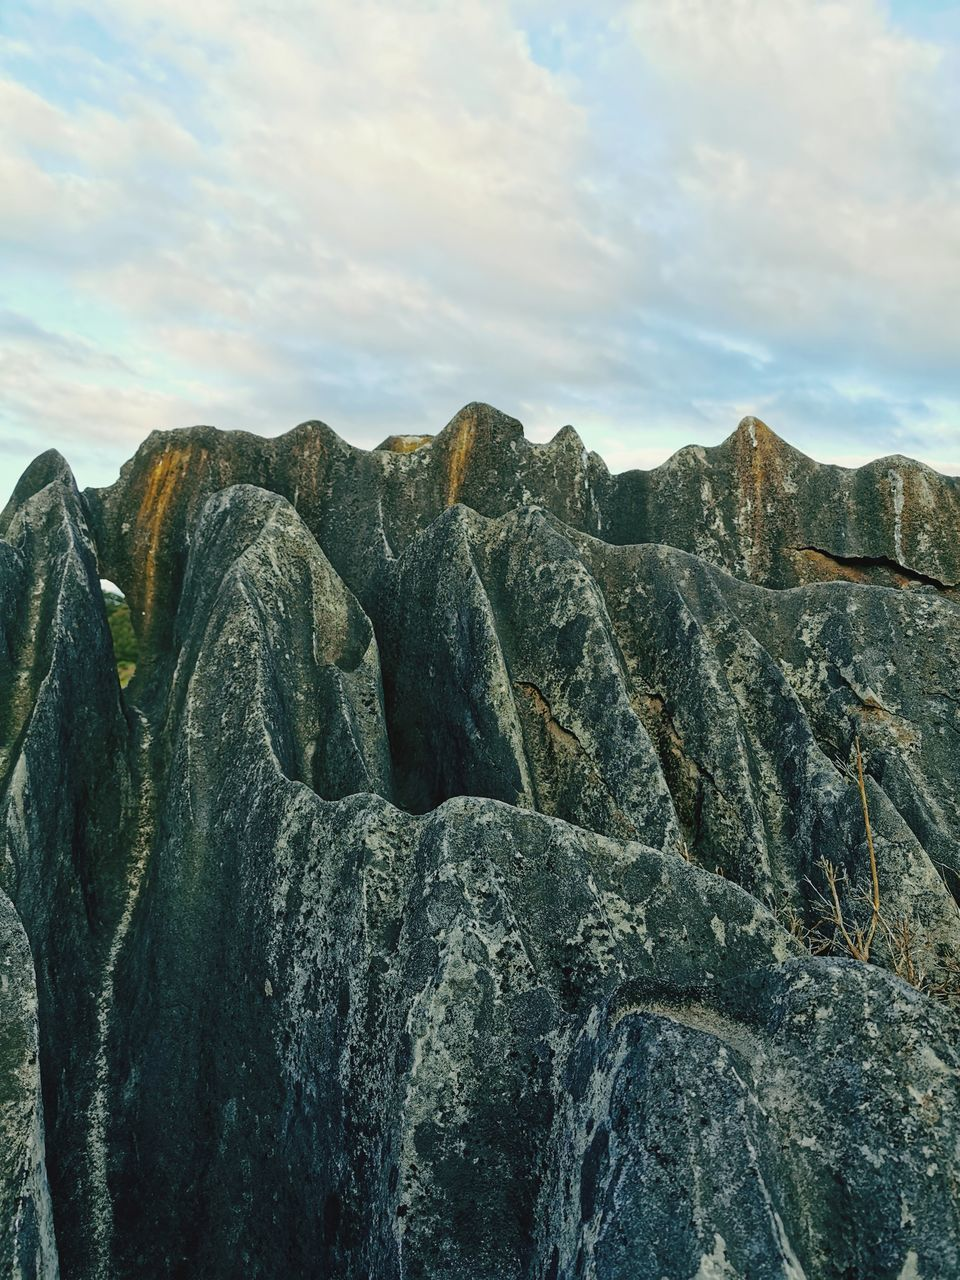 ROCK FORMATIONS AGAINST SKY